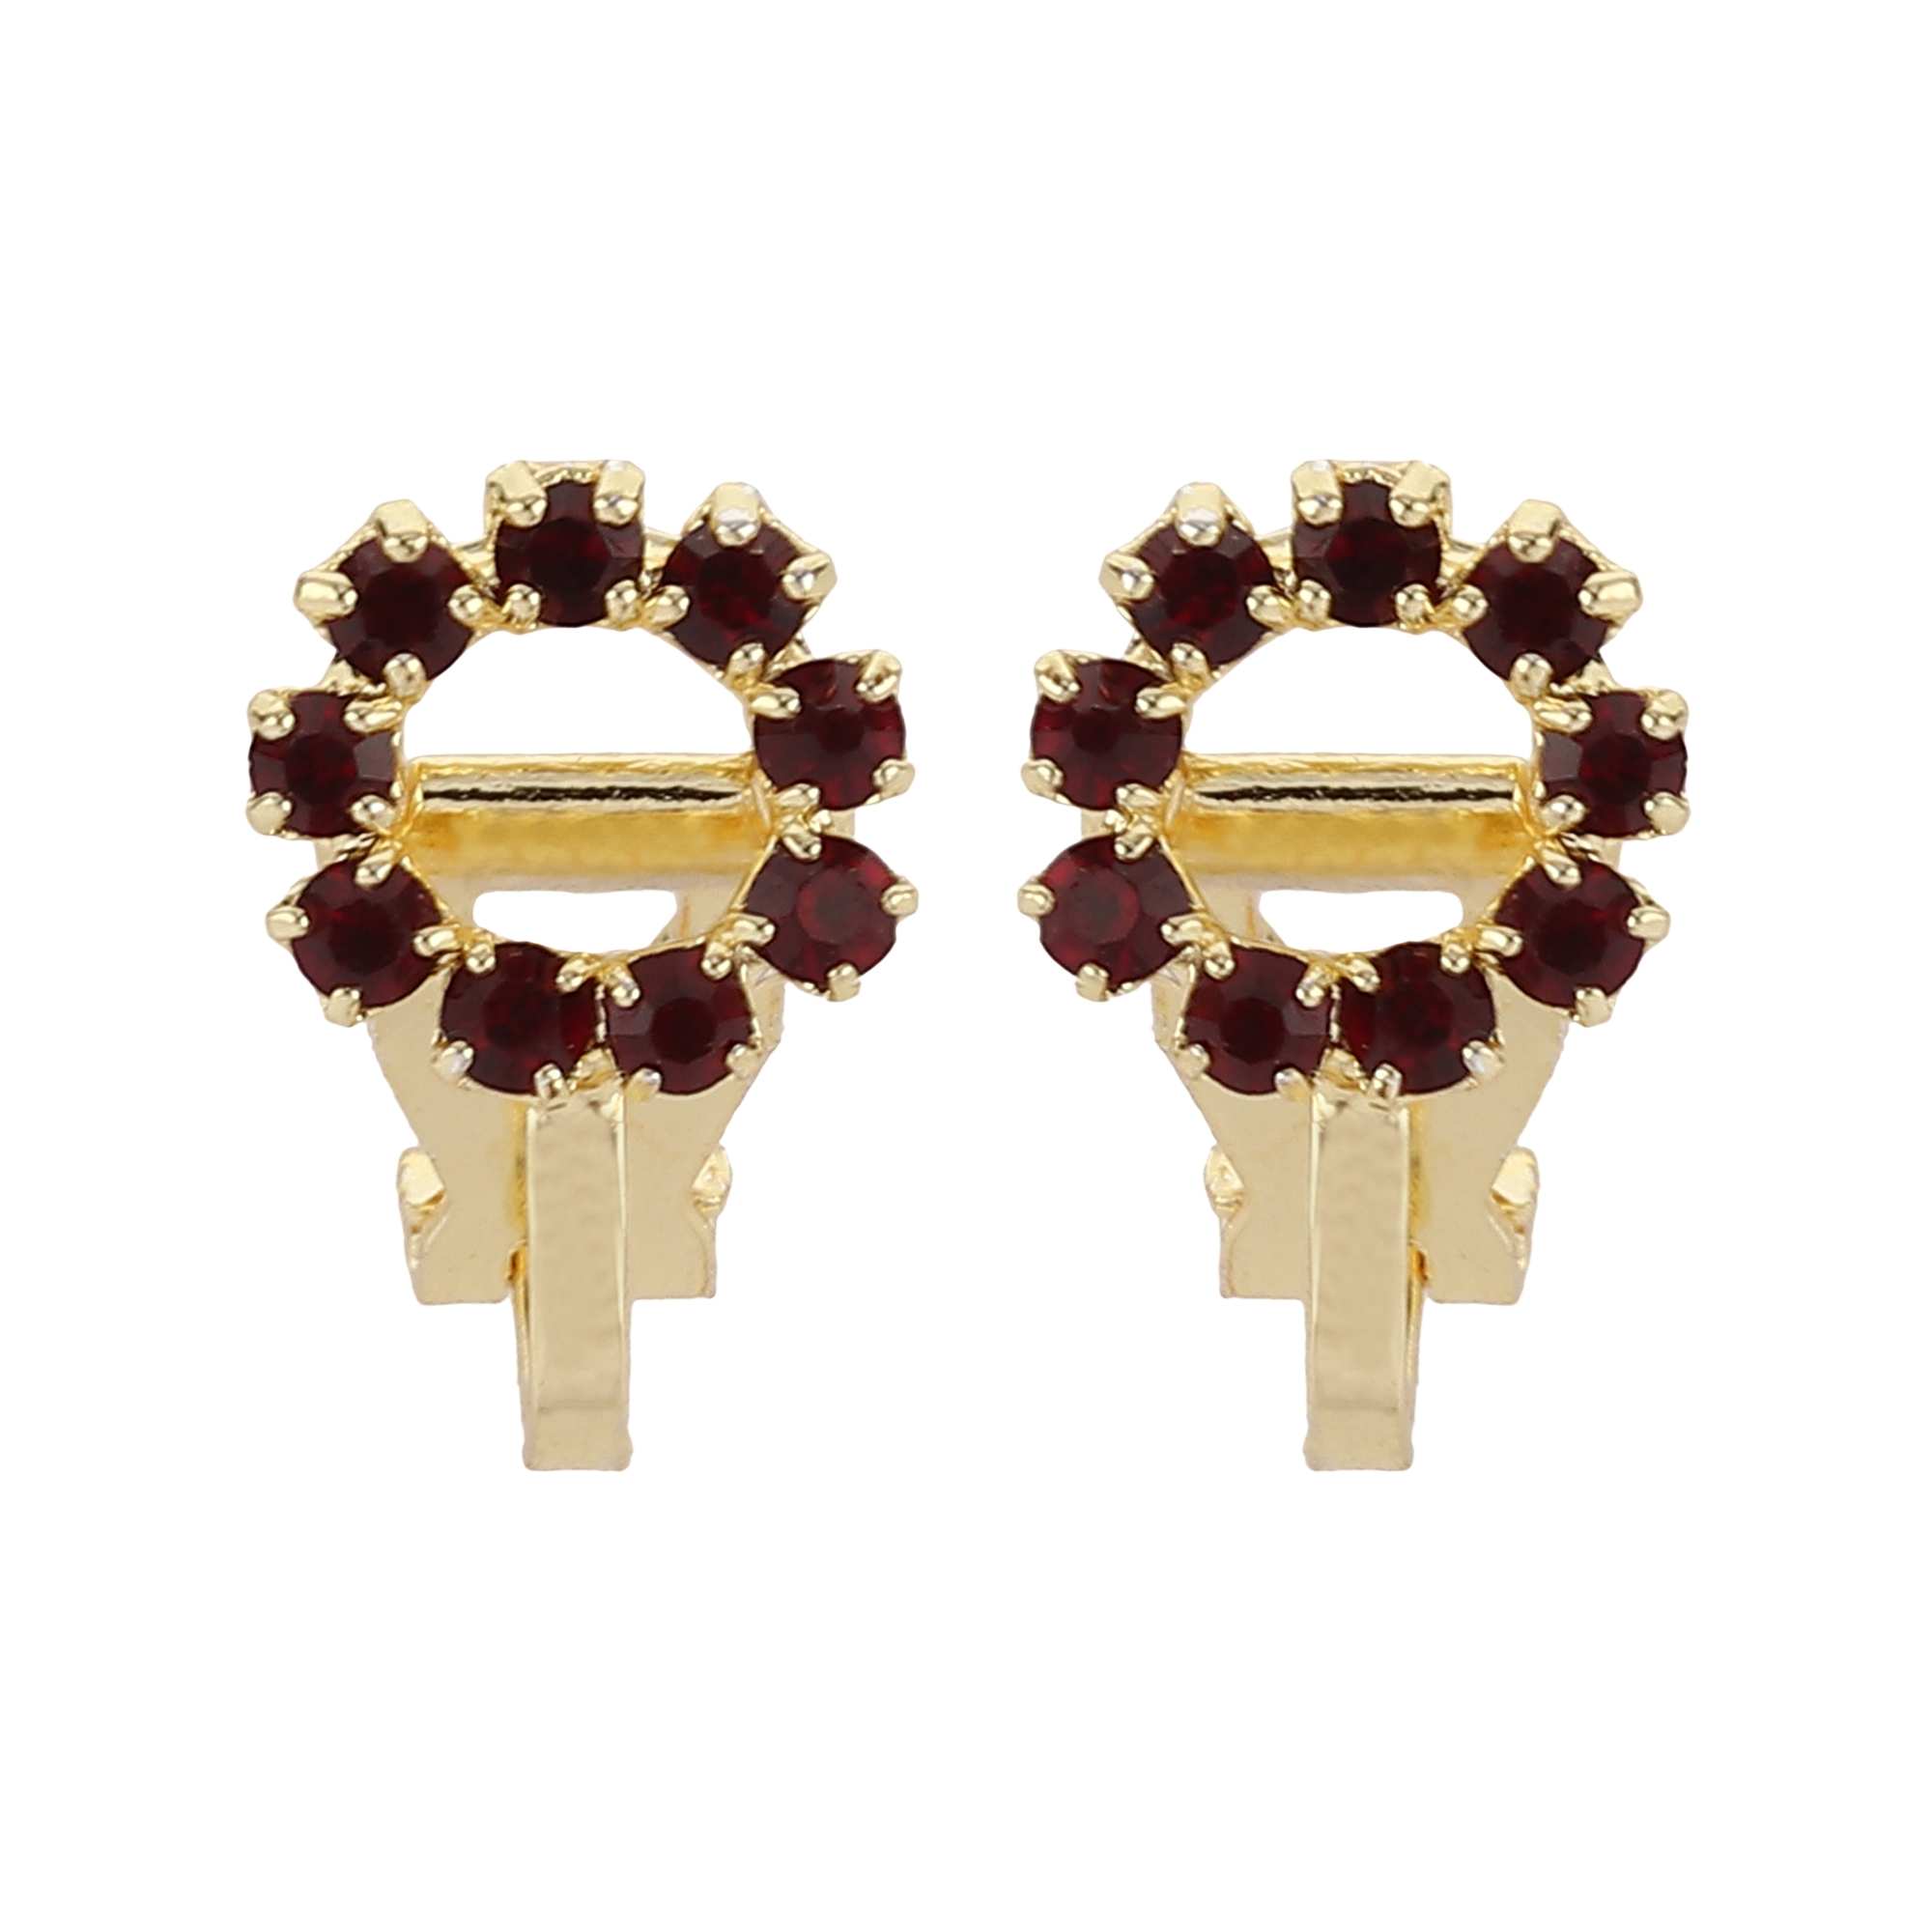 FirstBlush   FirstBlush Clip On Earrings for Non Piearced Ears for Women & Girls; Plating: Gold; Color: Maroon; Size: 10 X 10mm; Wt.: 3gm. (MIEC104M126)